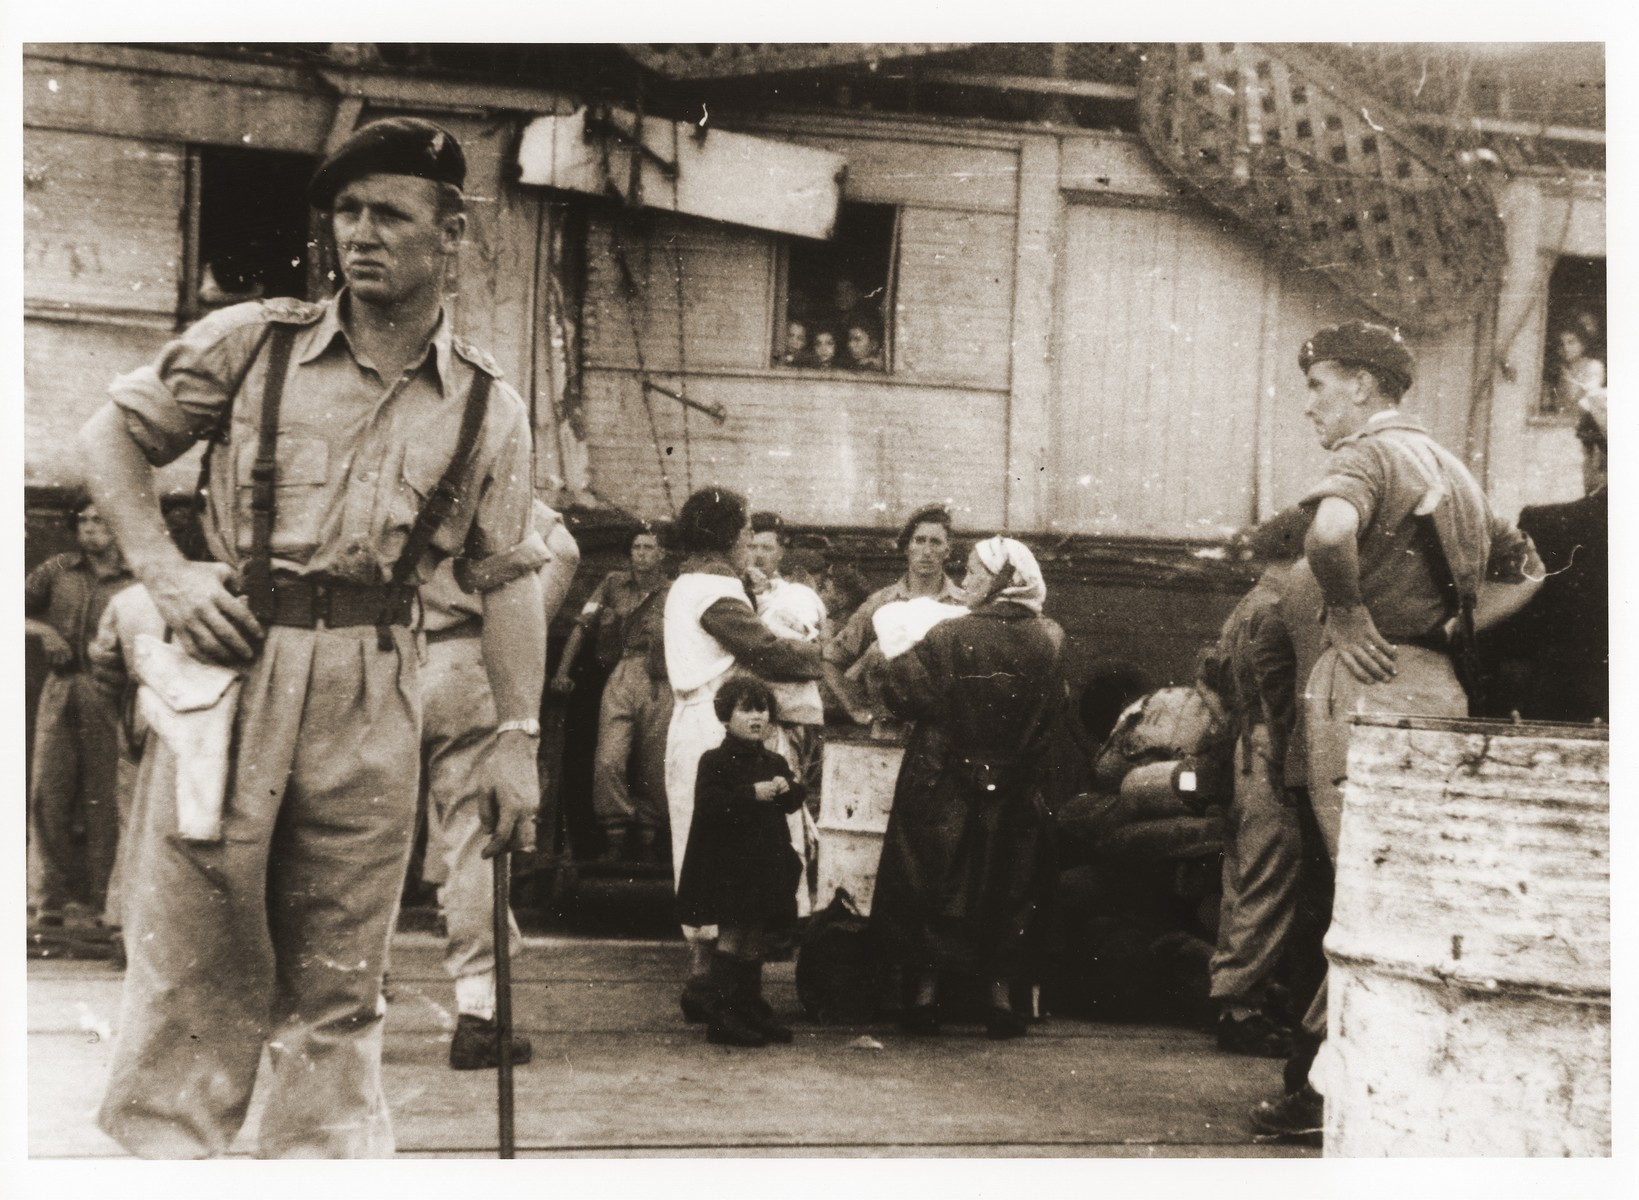 British soldiers stand guard on the pier in the port of Haifa as the passengers of the Exodus 1947 begin to disembark from the damaged ship.  The woman at the center left, wearing the white apron, holds her grandchild who was born on board the Exodus.  The child's mother died in childbirth.